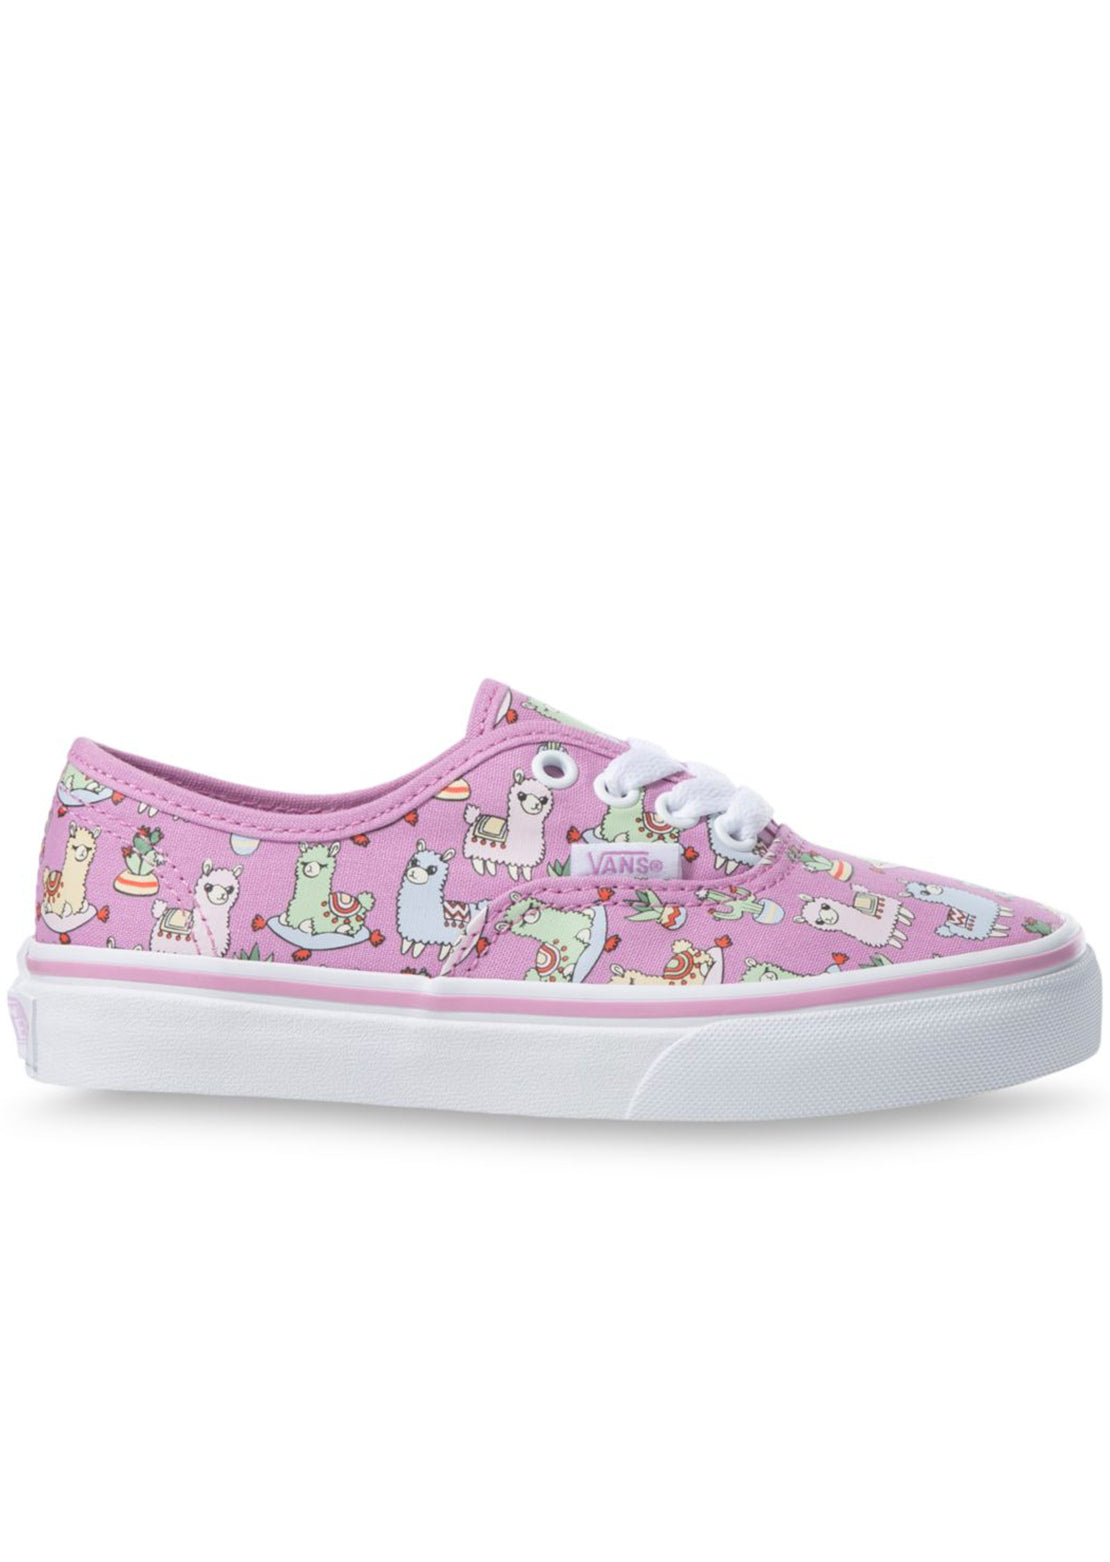 Vans Junior Authentic Shoes Llamas Orchid/True White